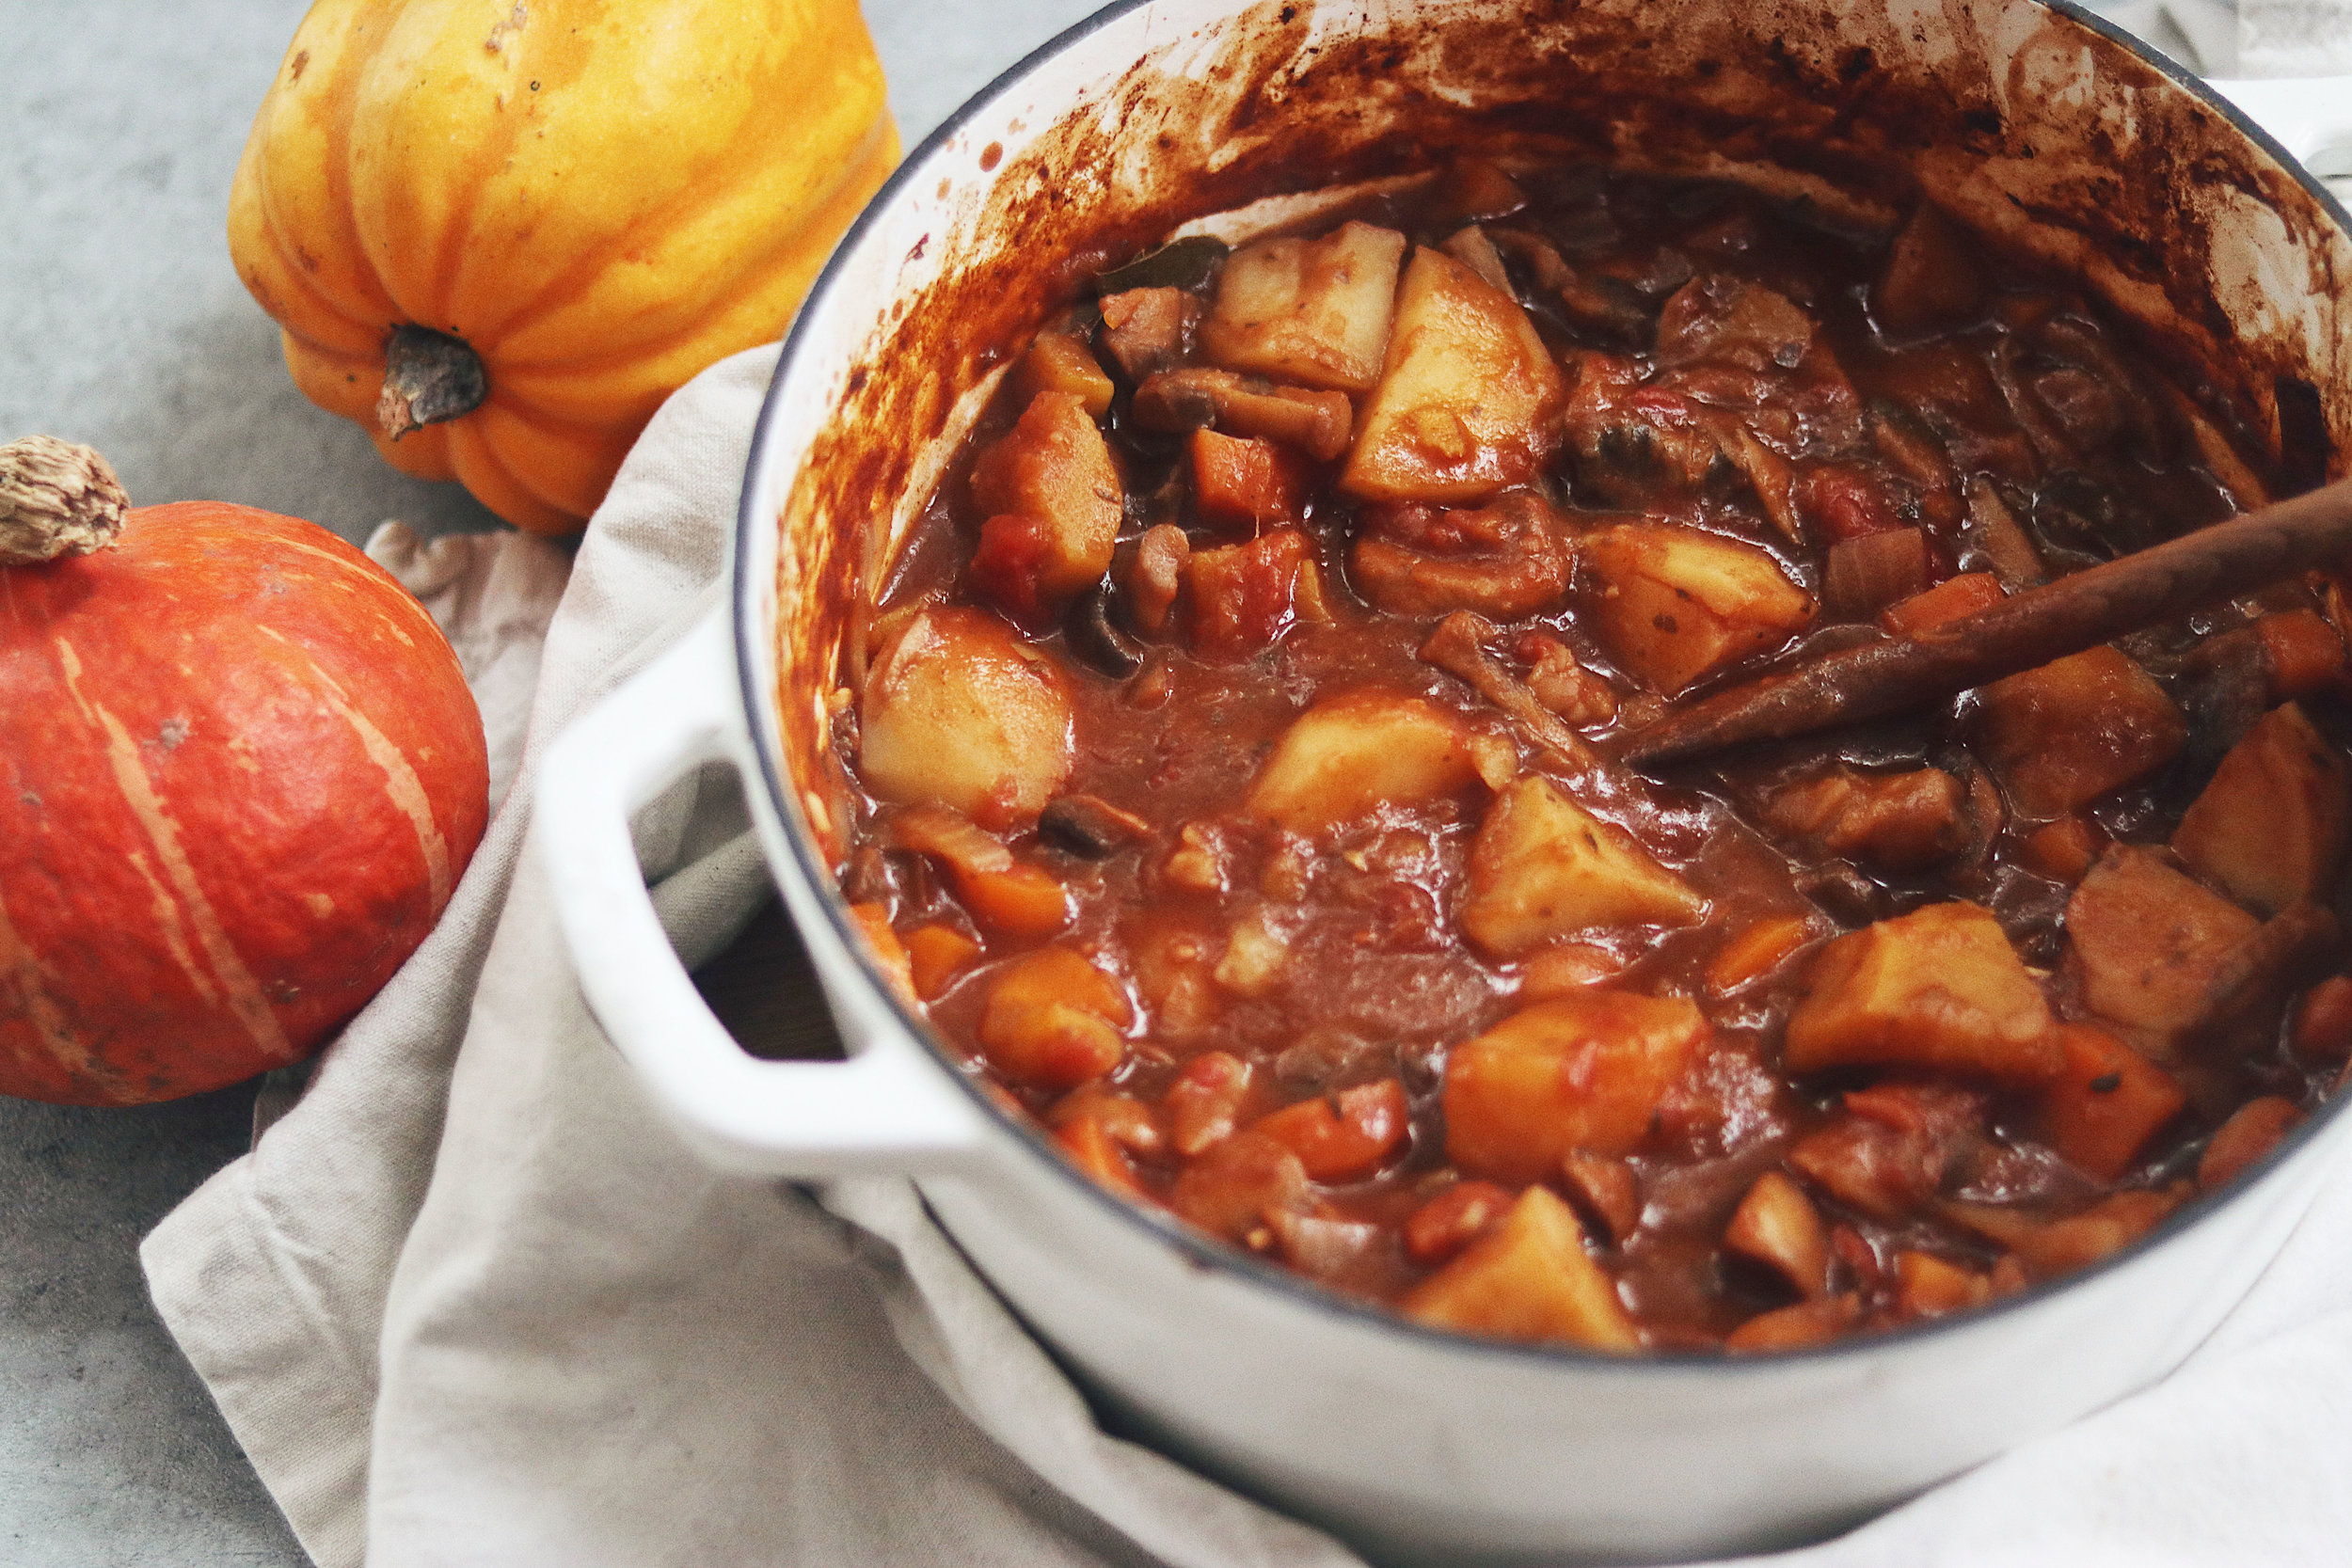 There is nothing more comforting than a delicious stew, and with the addition of pumpkin, it's perfect for fall. - prep time 20-30 mins total time 2 hours serves 4-6